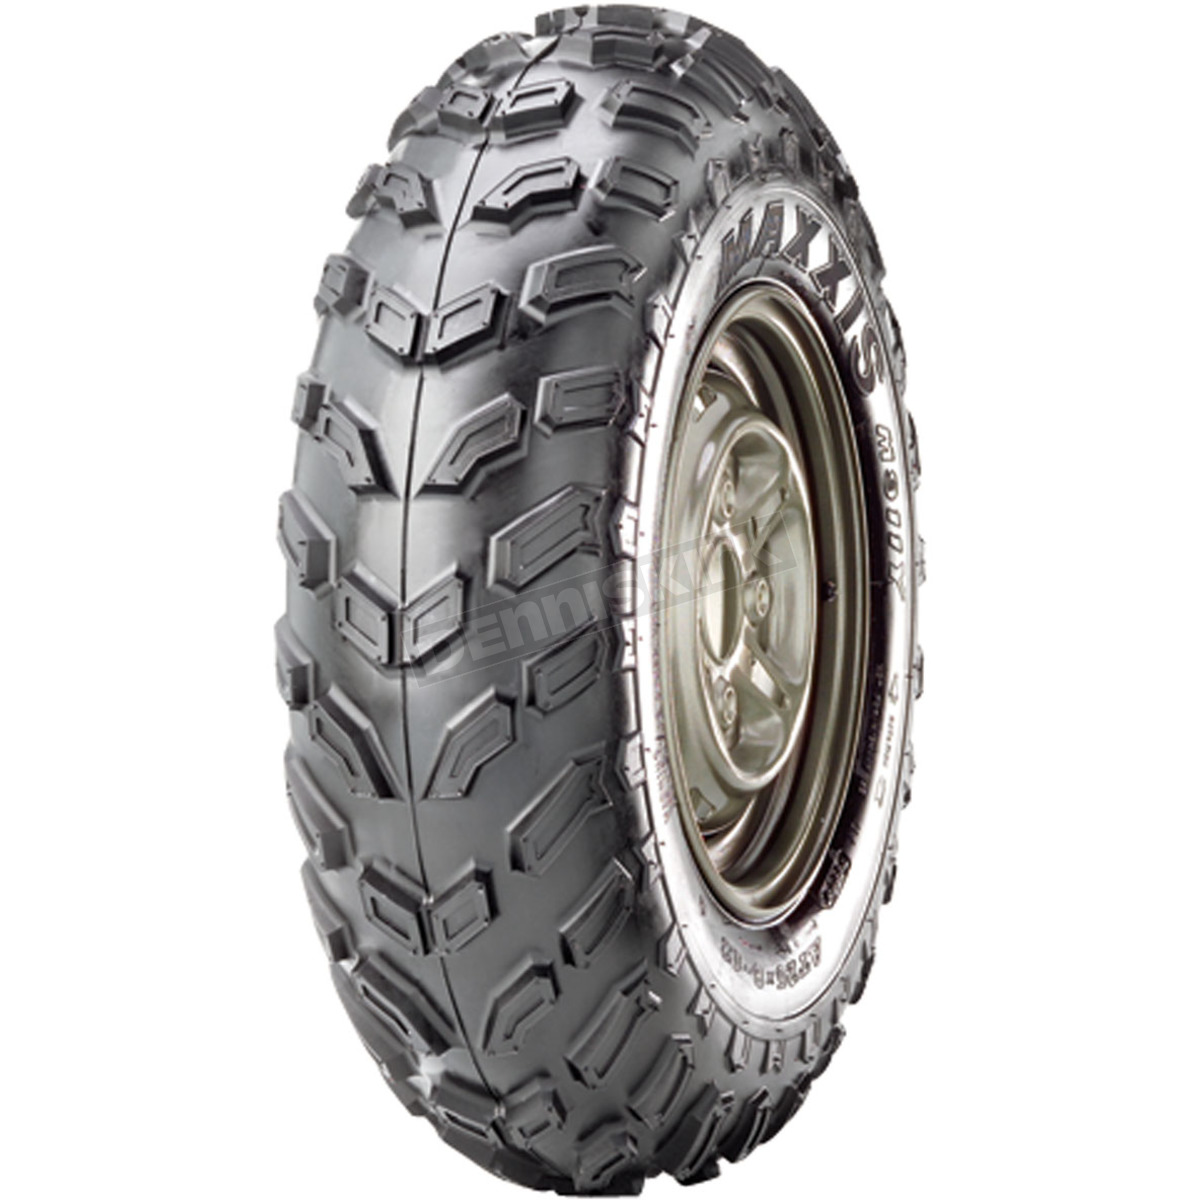 more choices more maxxis tires atv utv see more from maxxis see more ...